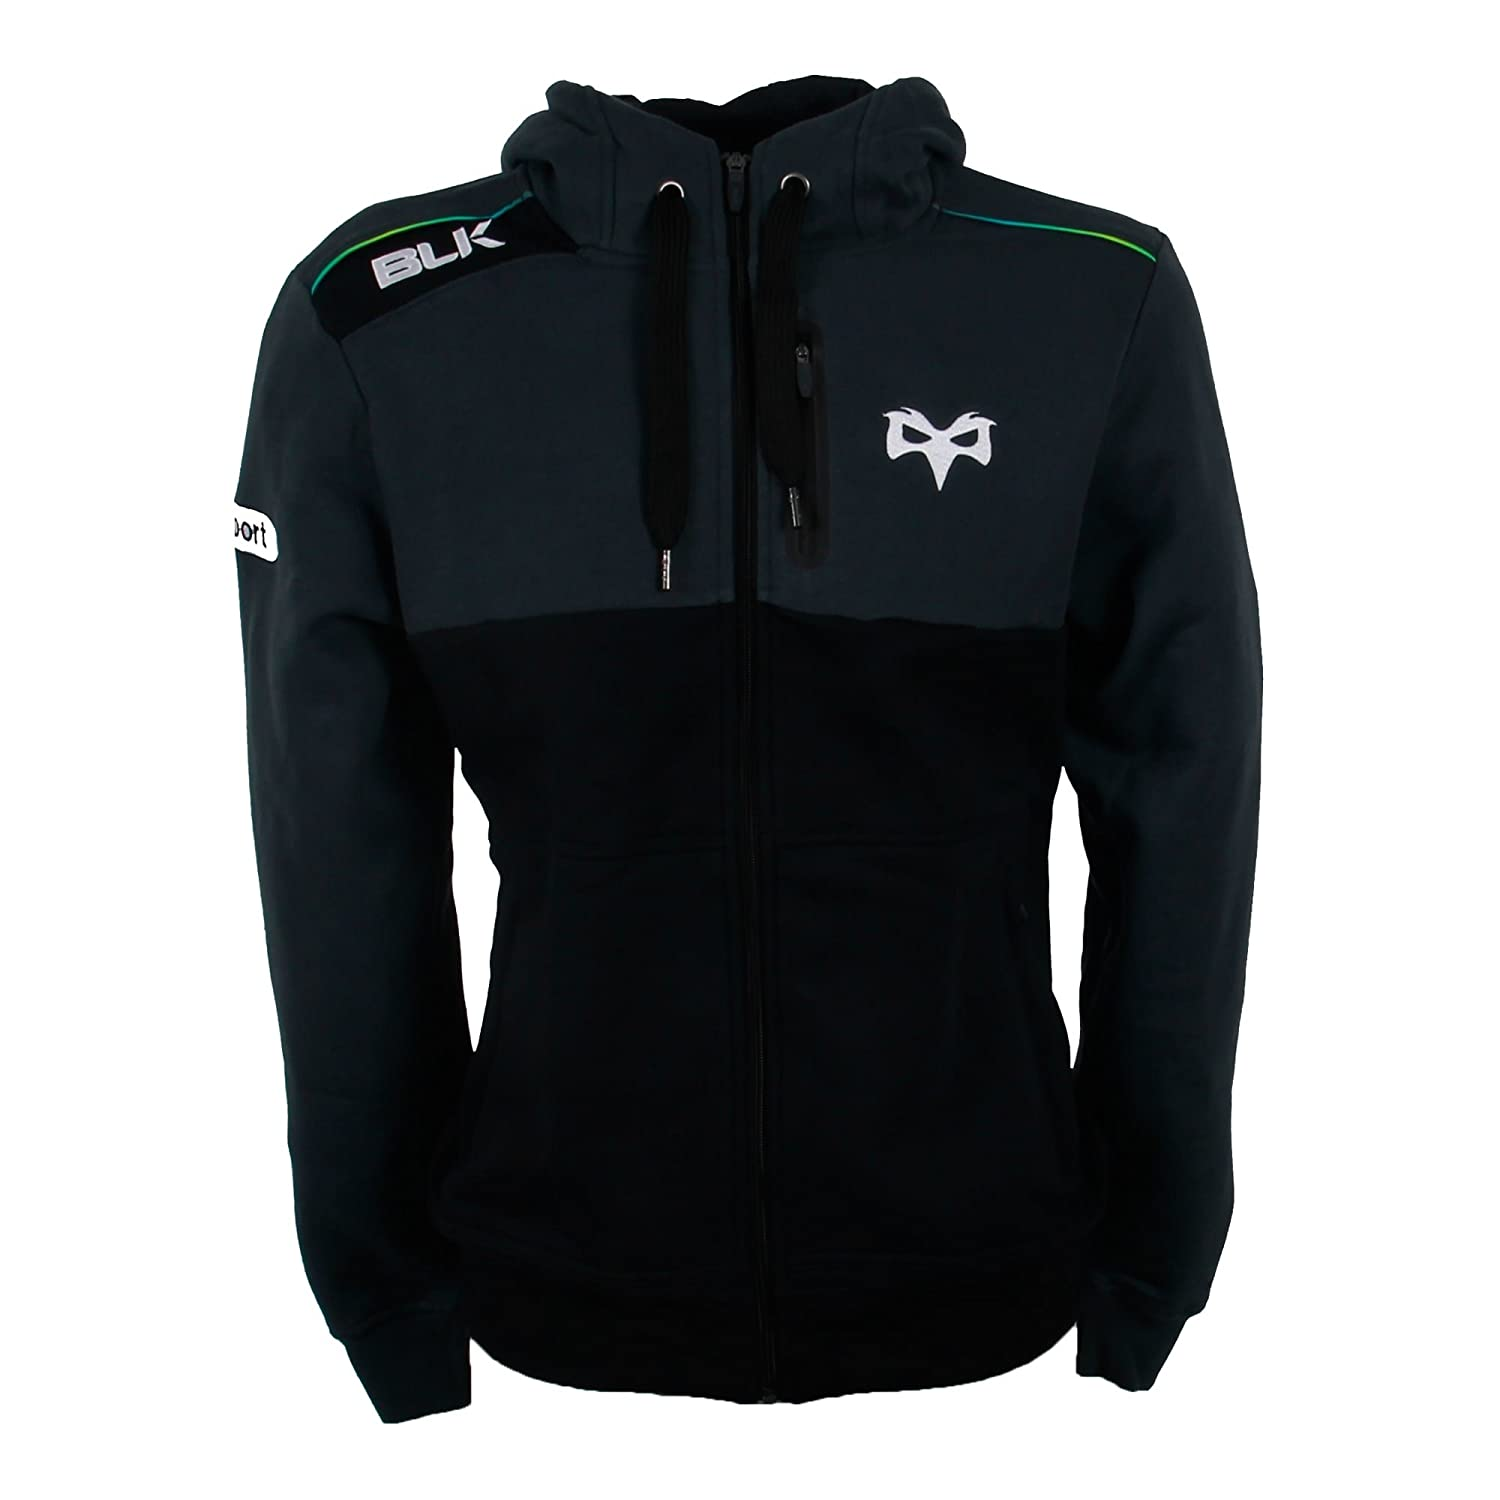 Ospreys Rugby Full Zip Hoody 2016 - Black BLK Sport